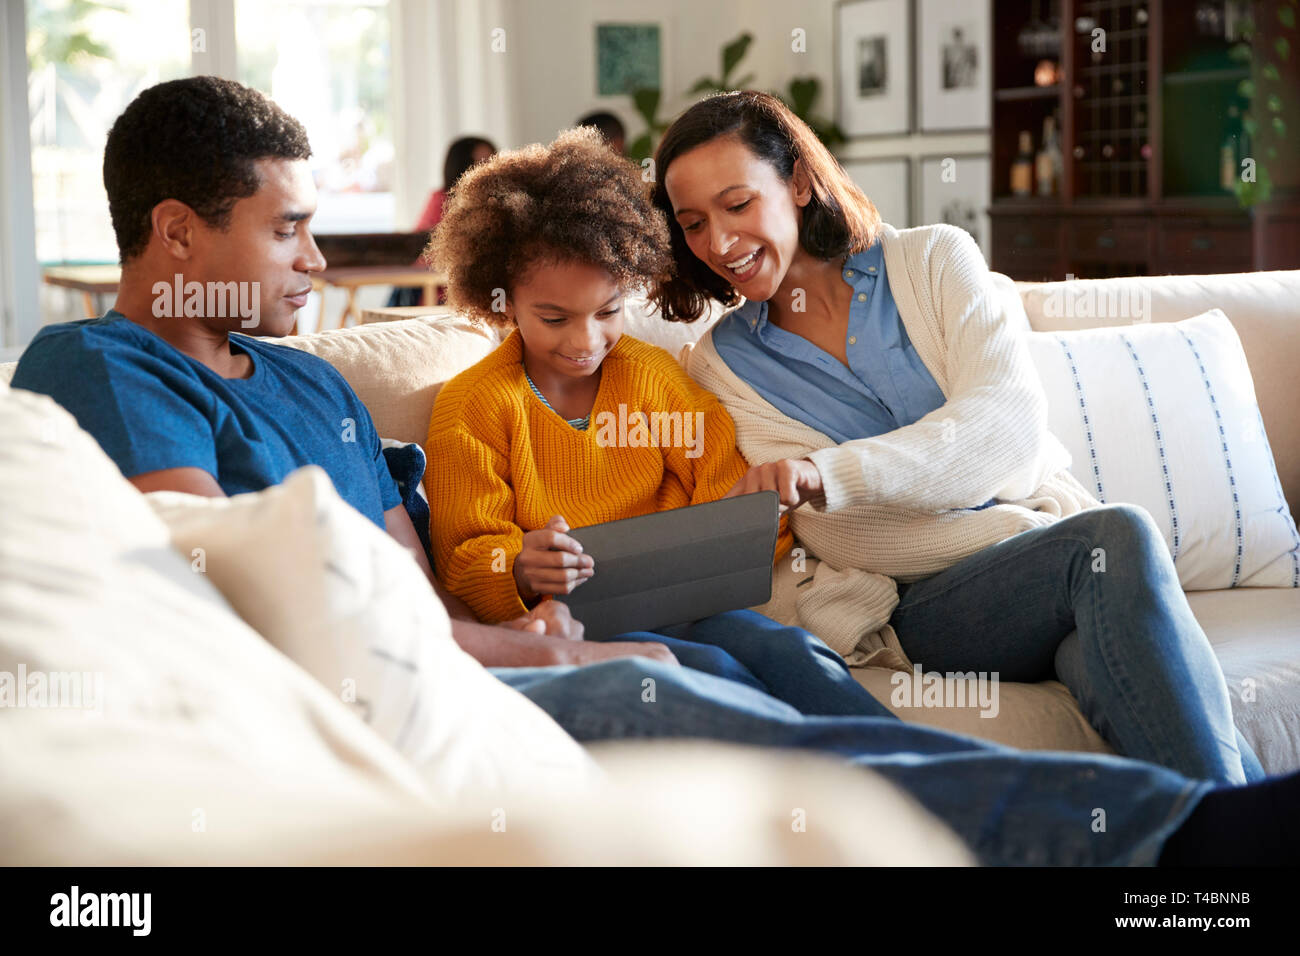 Young parents and their pre-teen daughter sitting on a sofa in the living room using a tablet computer together, selective focus - Stock Image